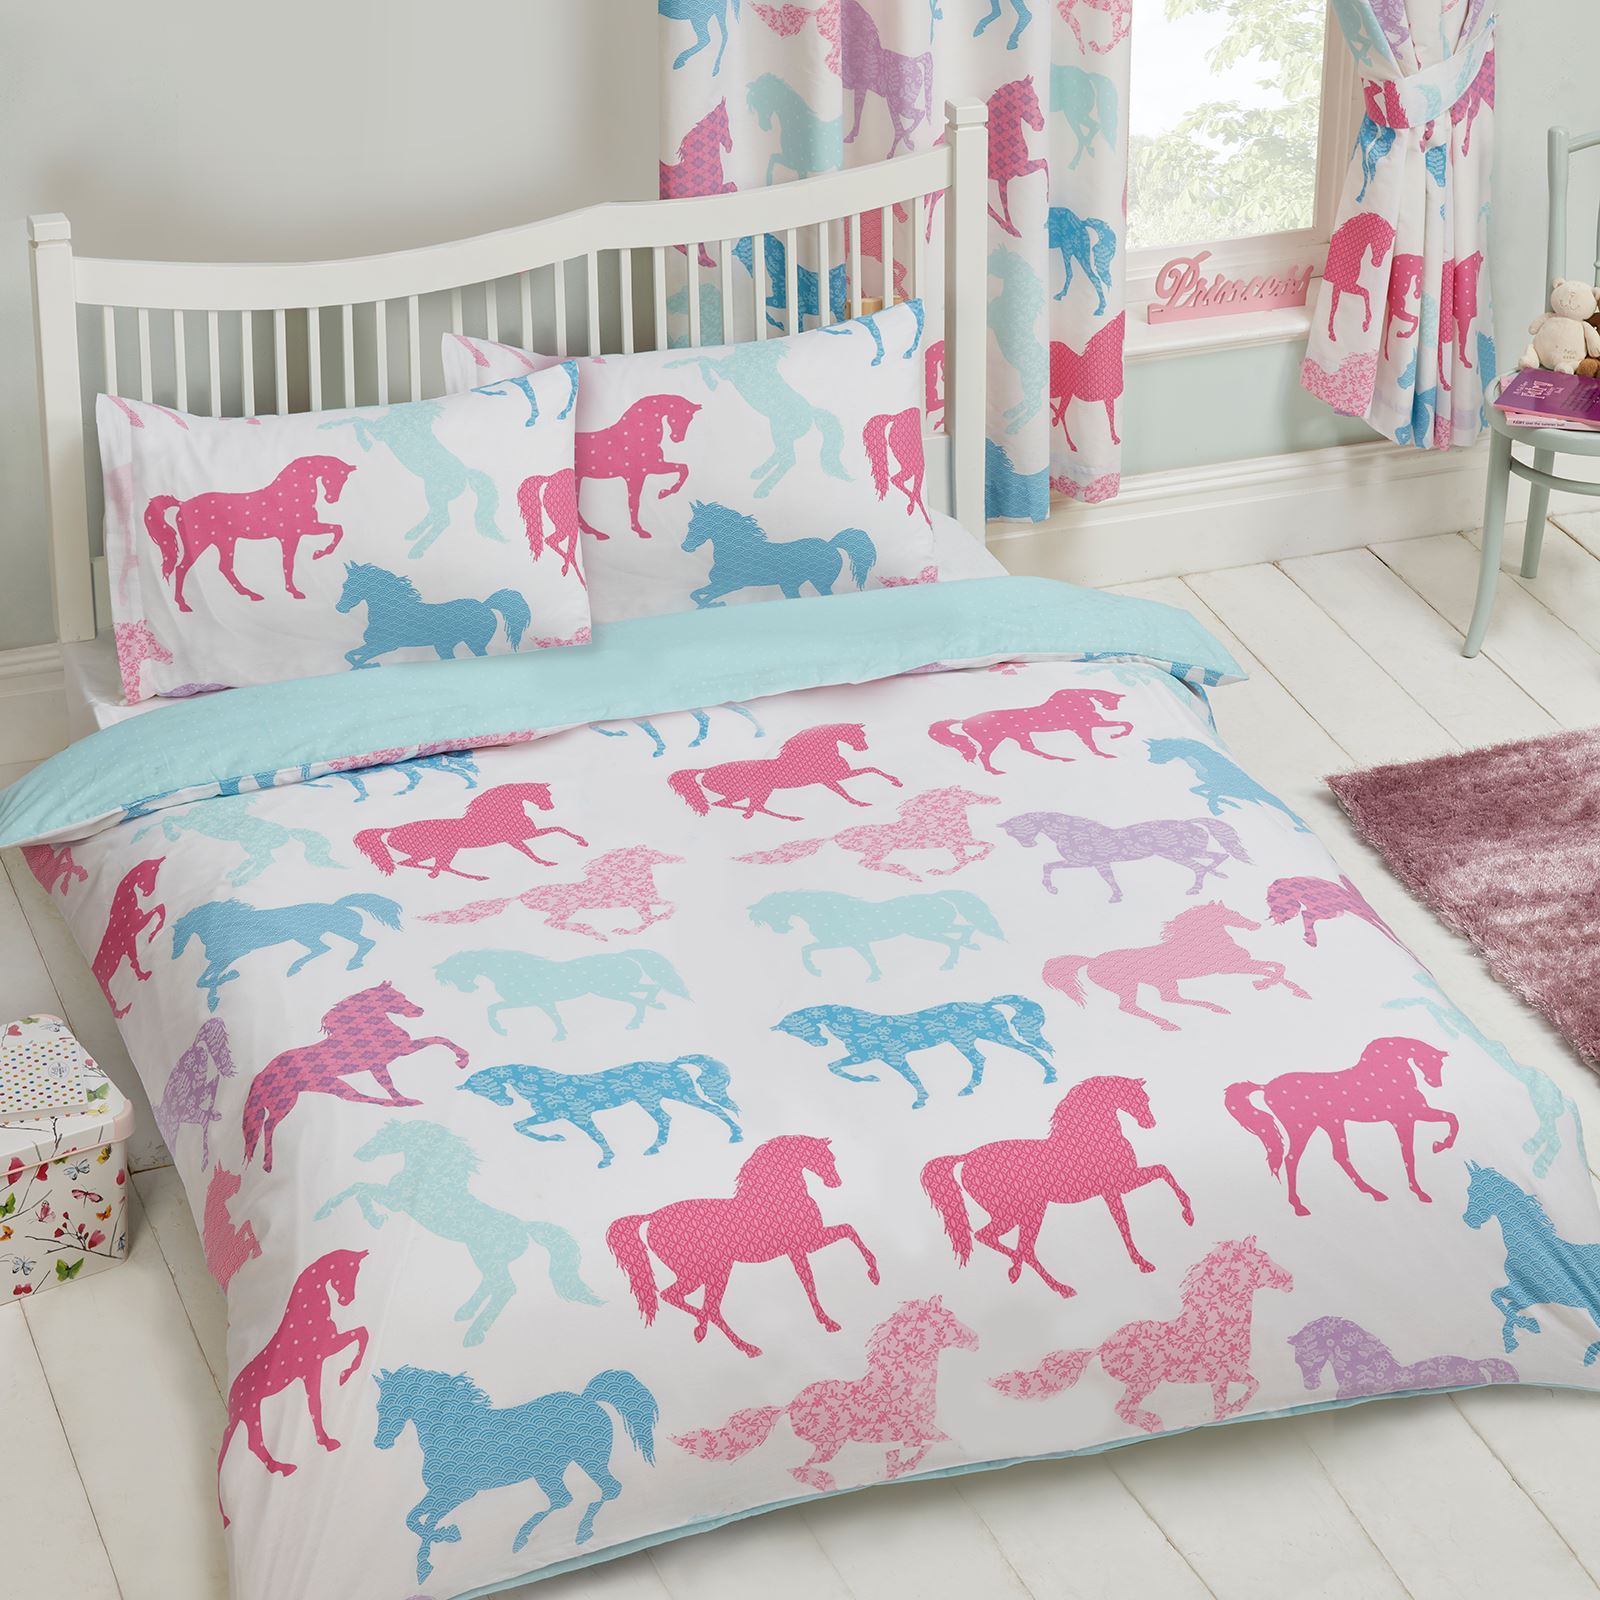 jungen m dchen doppel doppelbett bettw sche sets elefant t rex armee ballerina ebay. Black Bedroom Furniture Sets. Home Design Ideas